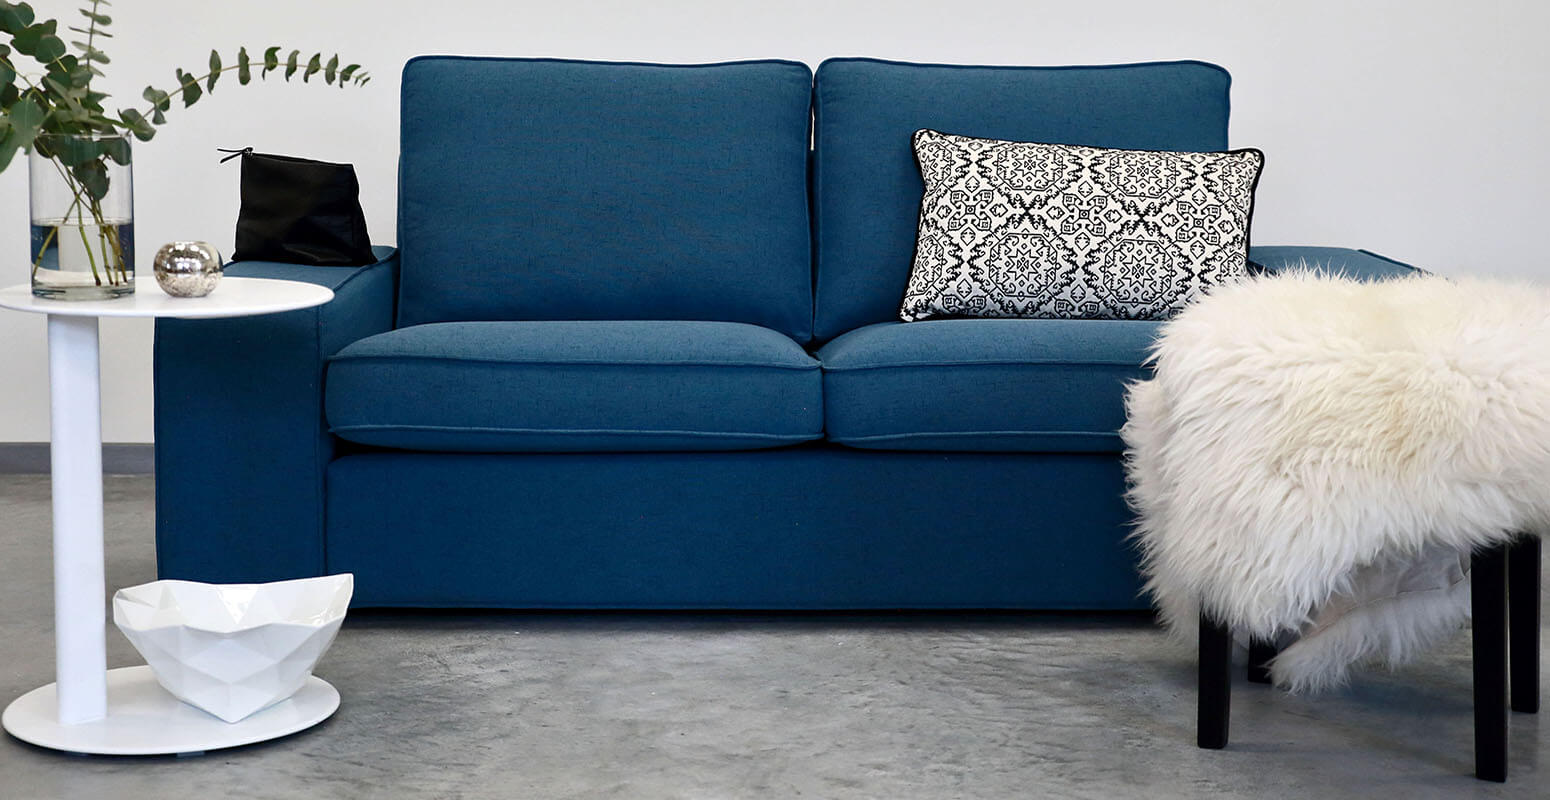 IKEA KIVIK sofa covers